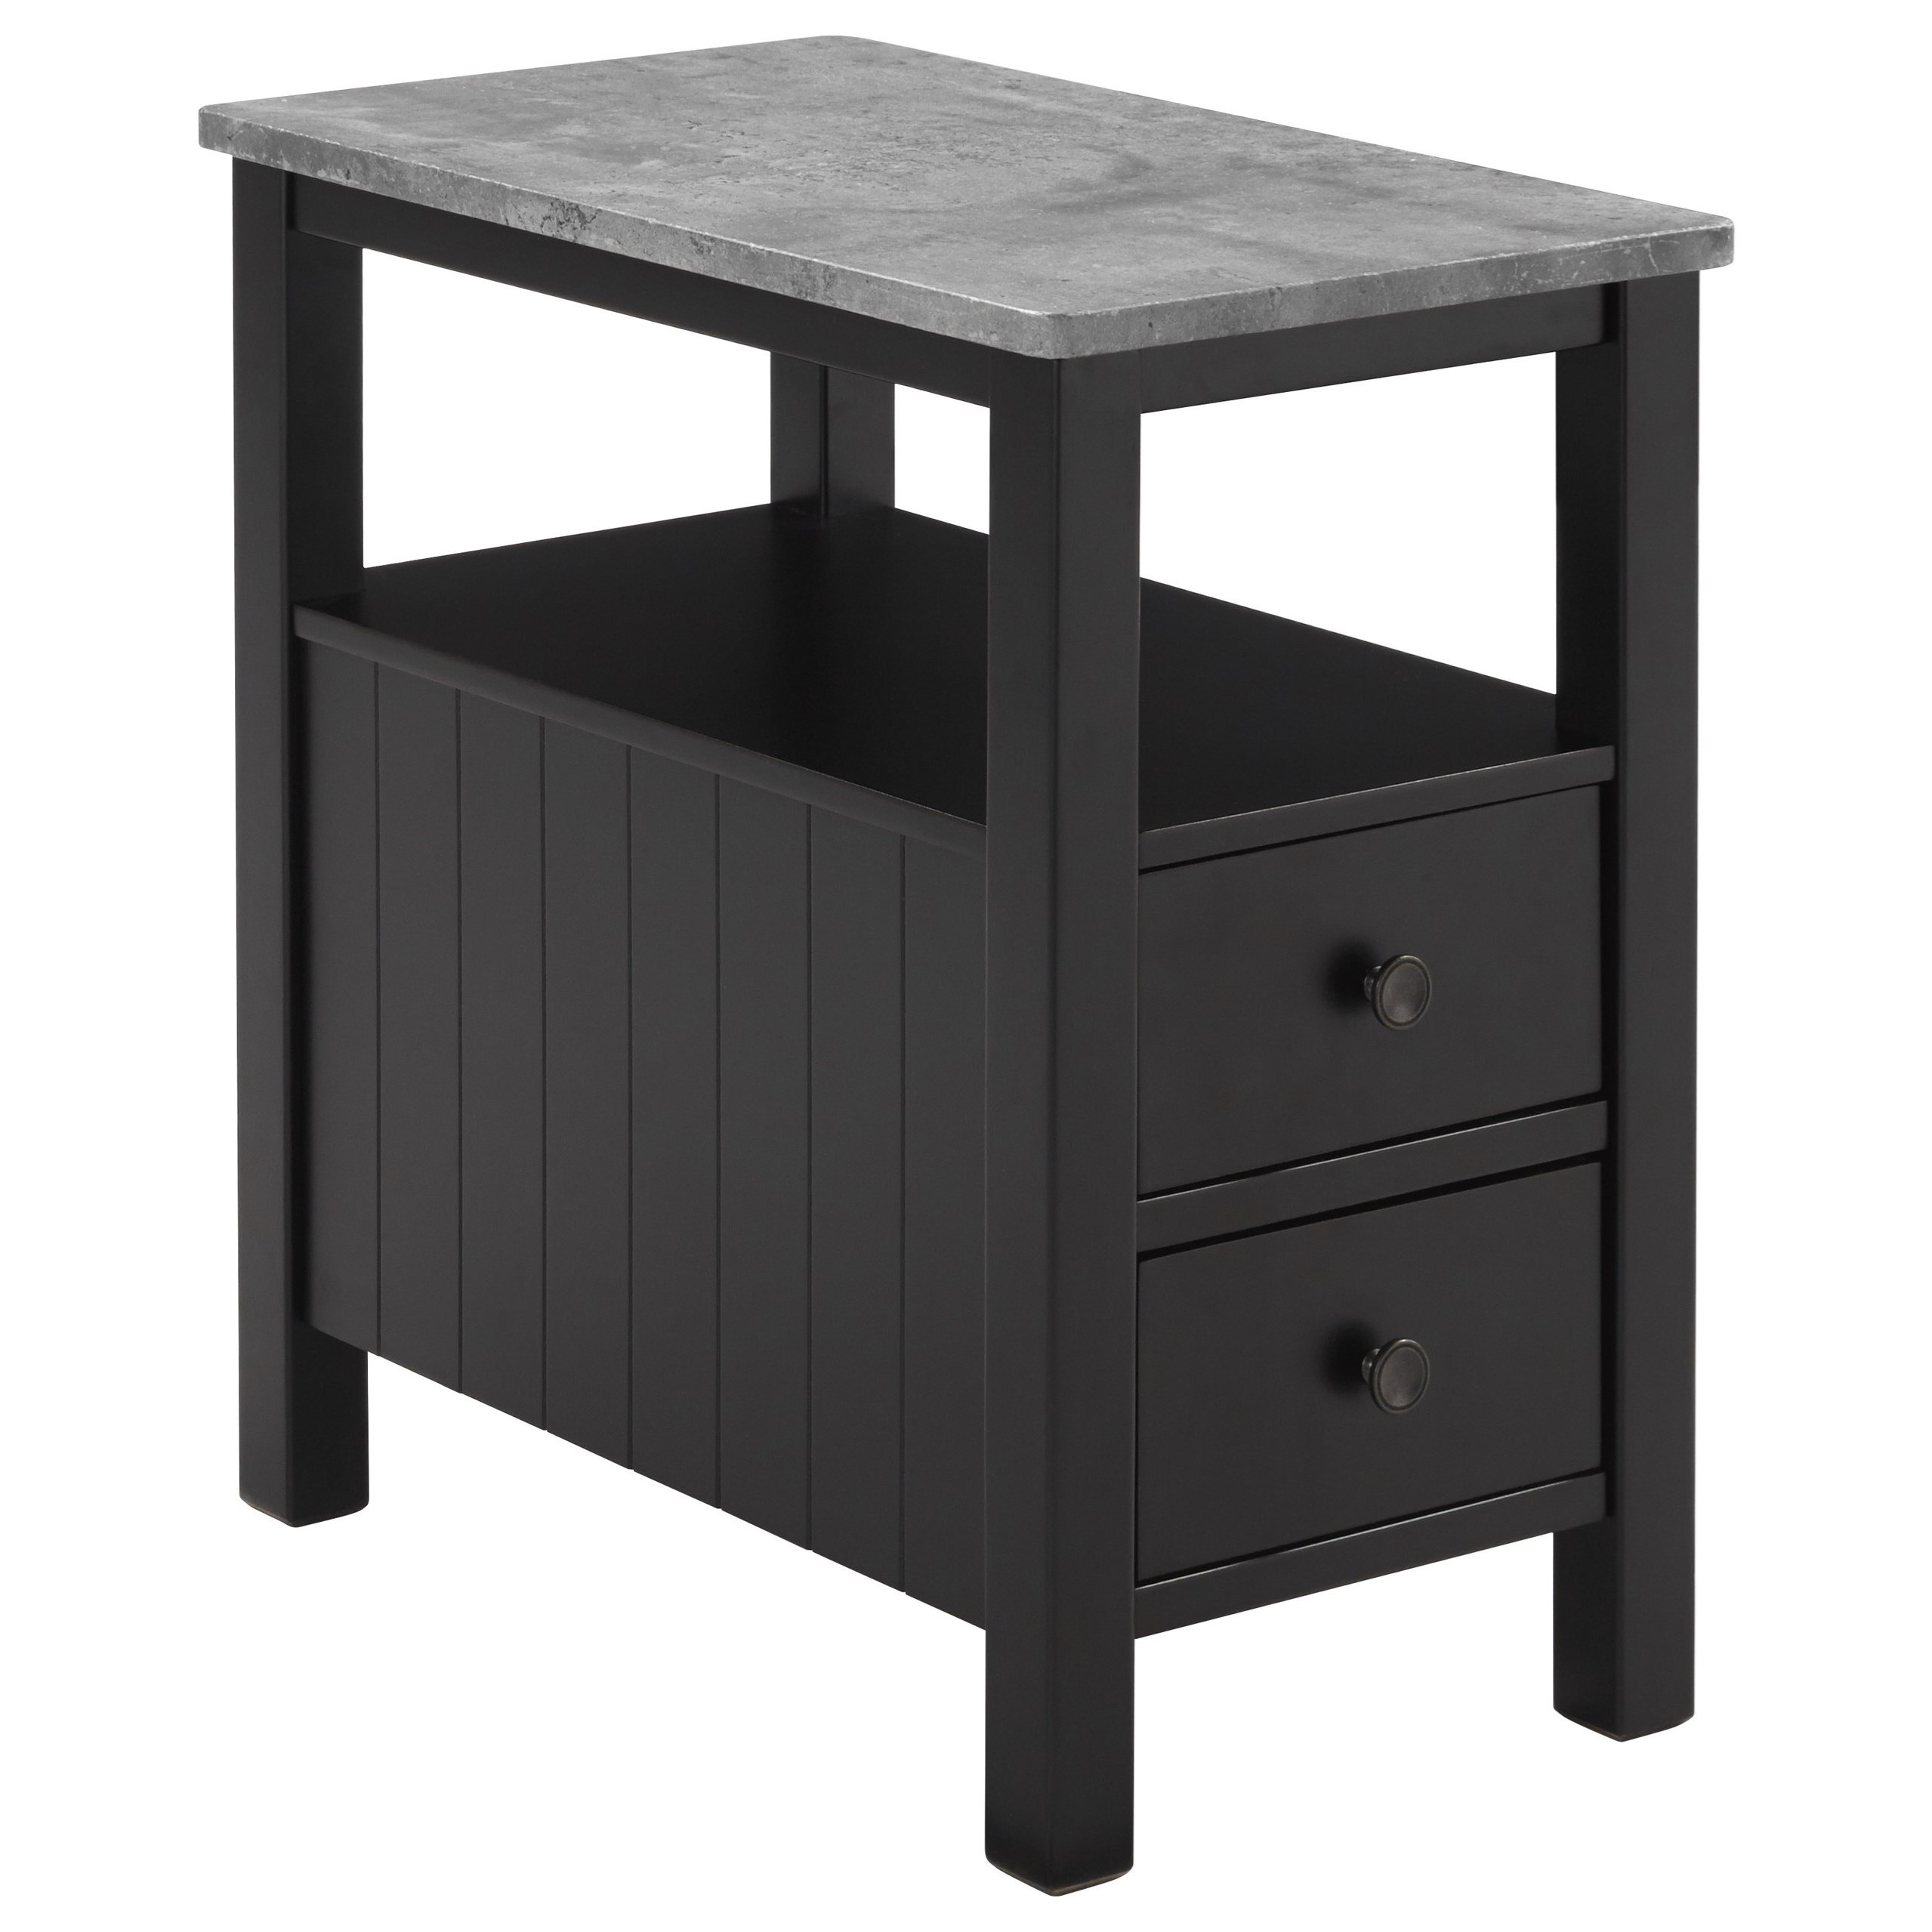 Signature Design by Ashley Ezmonei Chair Side End Table - Item Number: T341-7